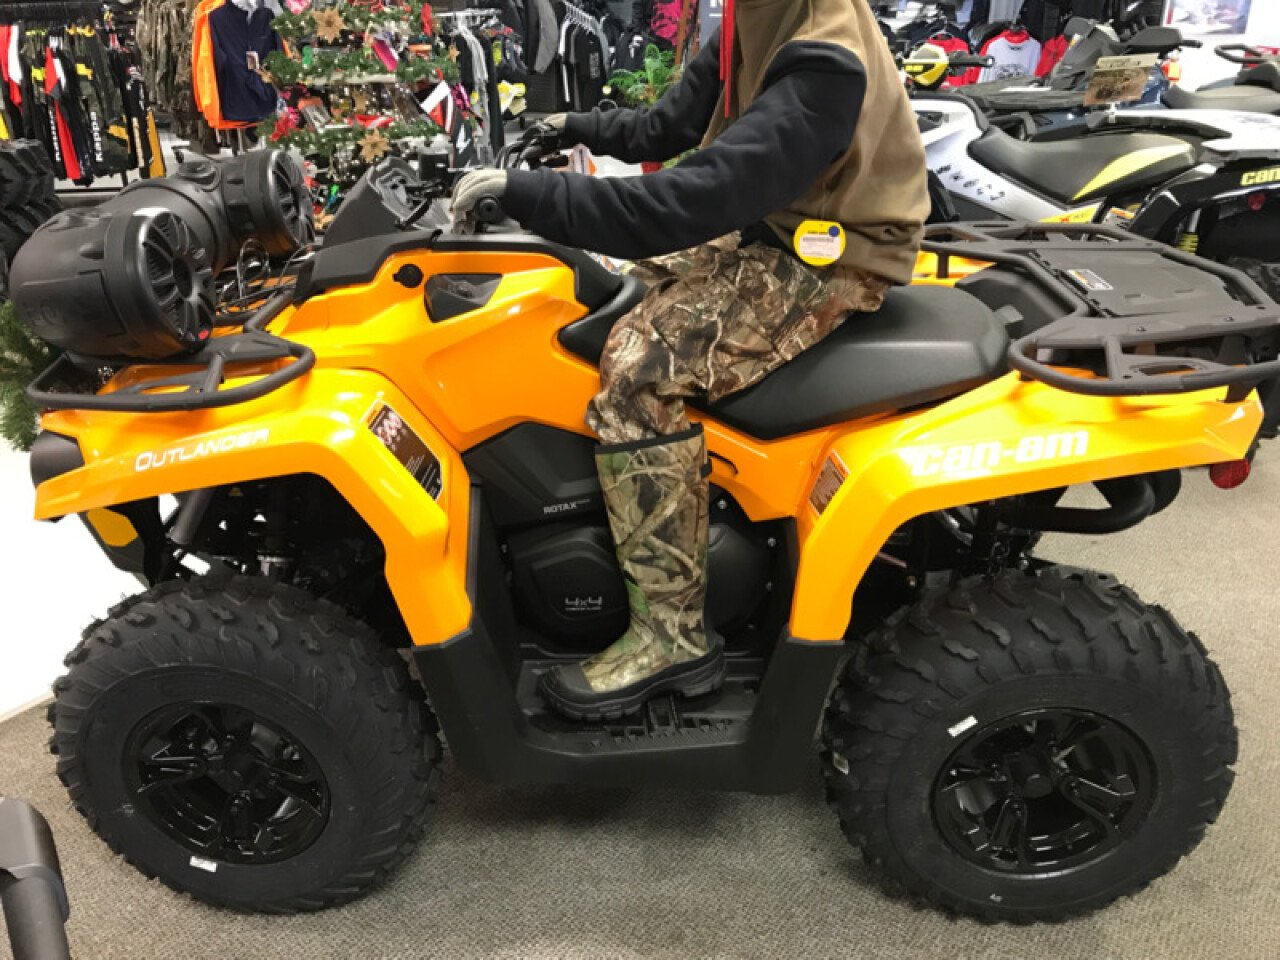 Can Am Outlander Max 2018 >> 2018 Can-Am Outlander 570 for sale near Winston-Salem, North Carolina 27103 - Motorcycles on ...